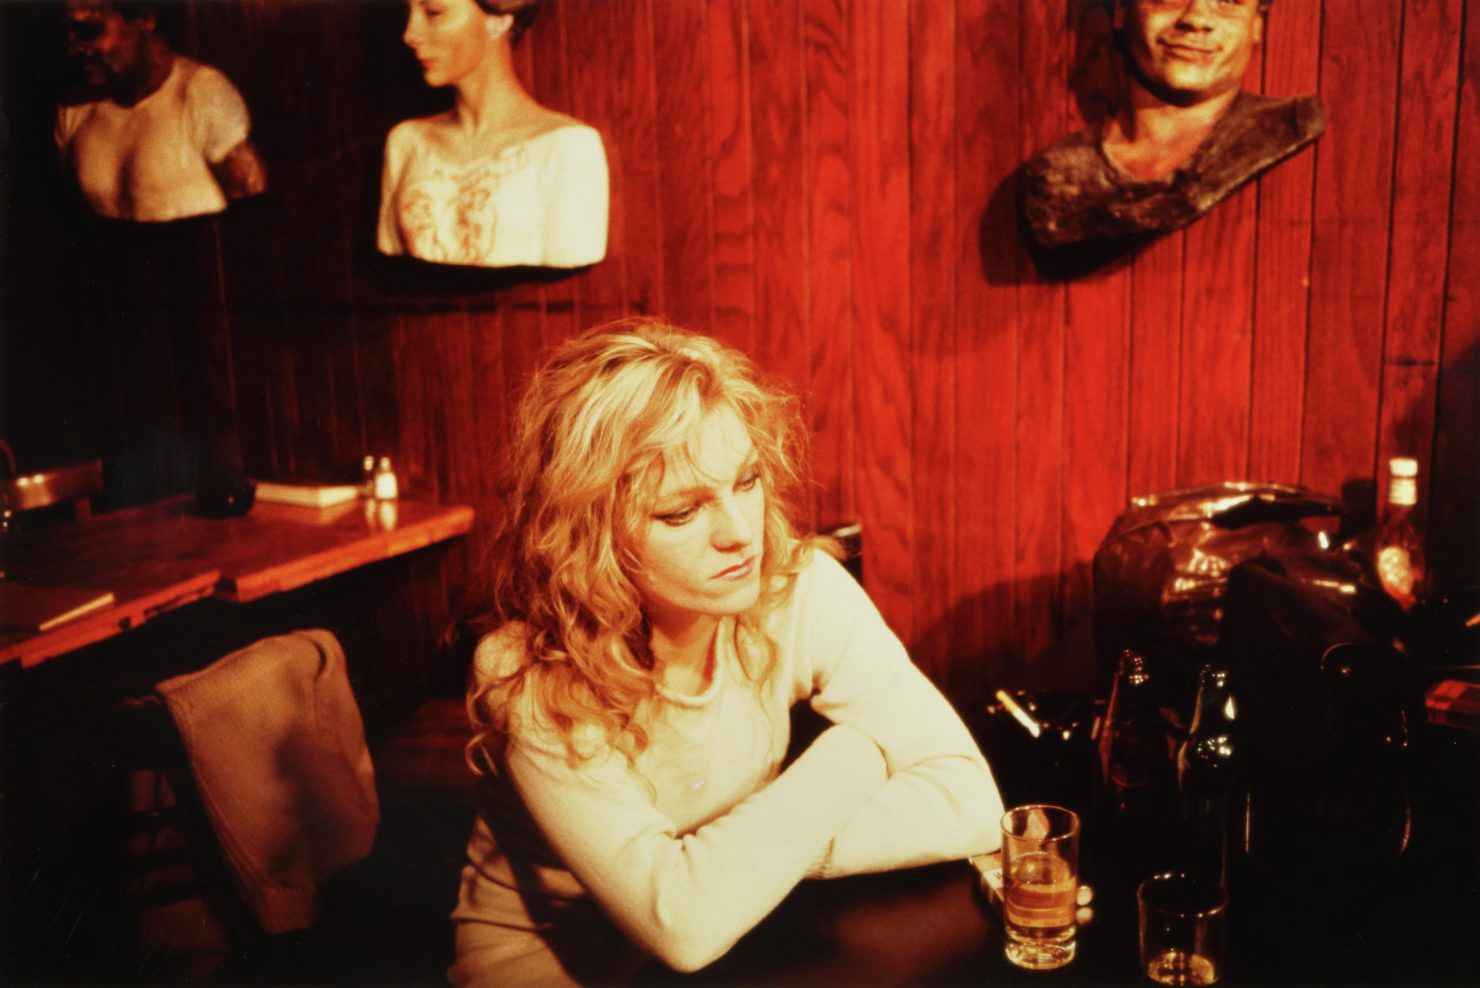 In a reddish wood paneled bar, a blonde woman sits, eyes downcast in thought, arms folded on the bar counter in front of her.